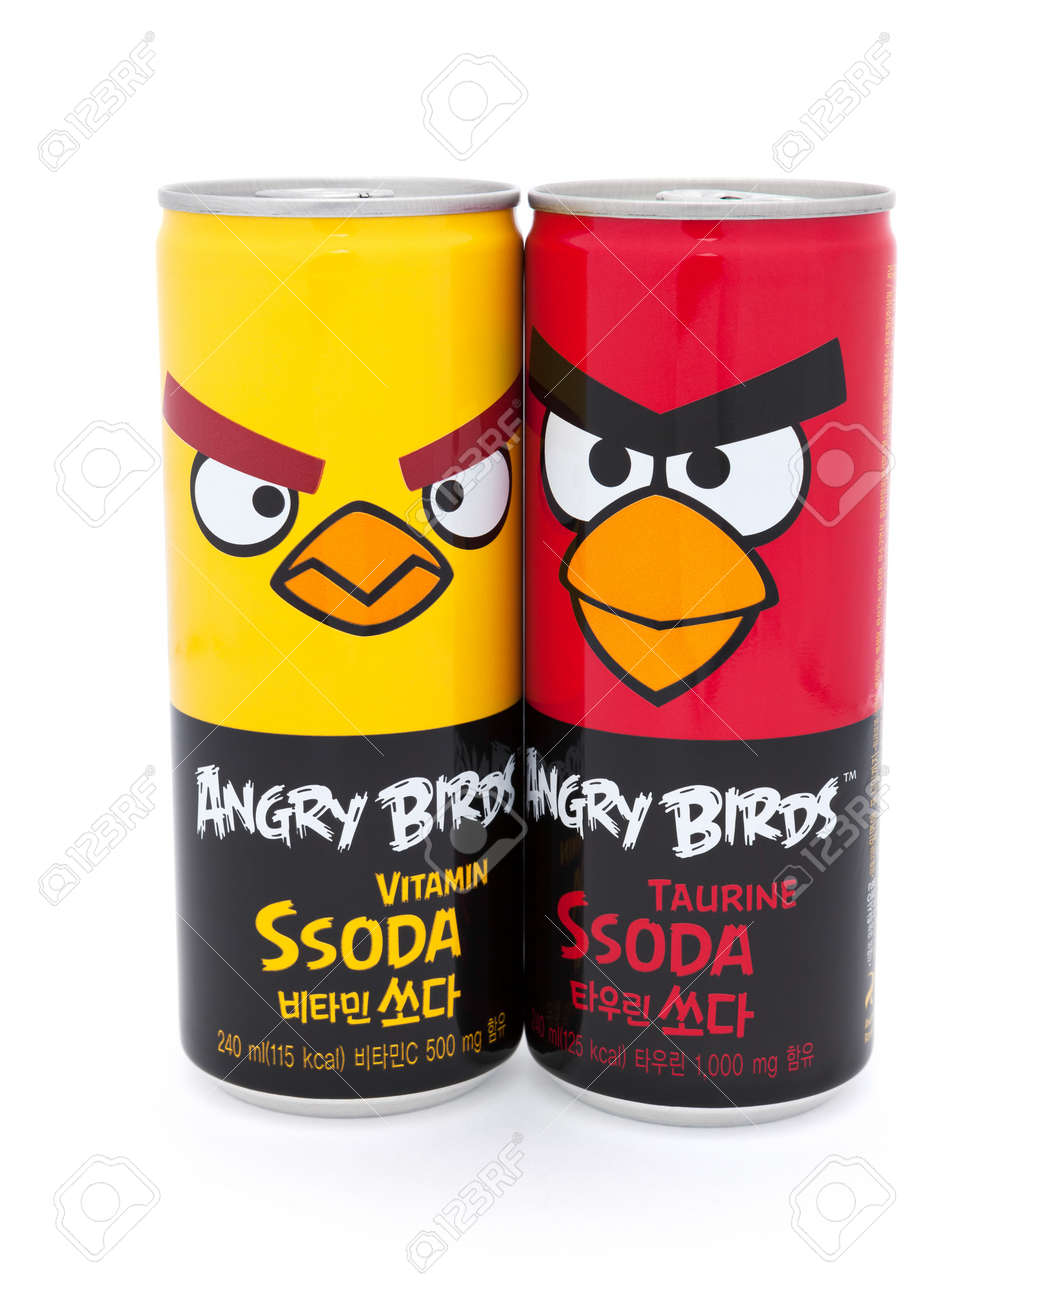 Taipei, Taiwan - January 8, 2012: This is a studio shot of two cans of Angry Birds beverages made by the Korean company Paldo isolated on white. Stock Photo - 17465222